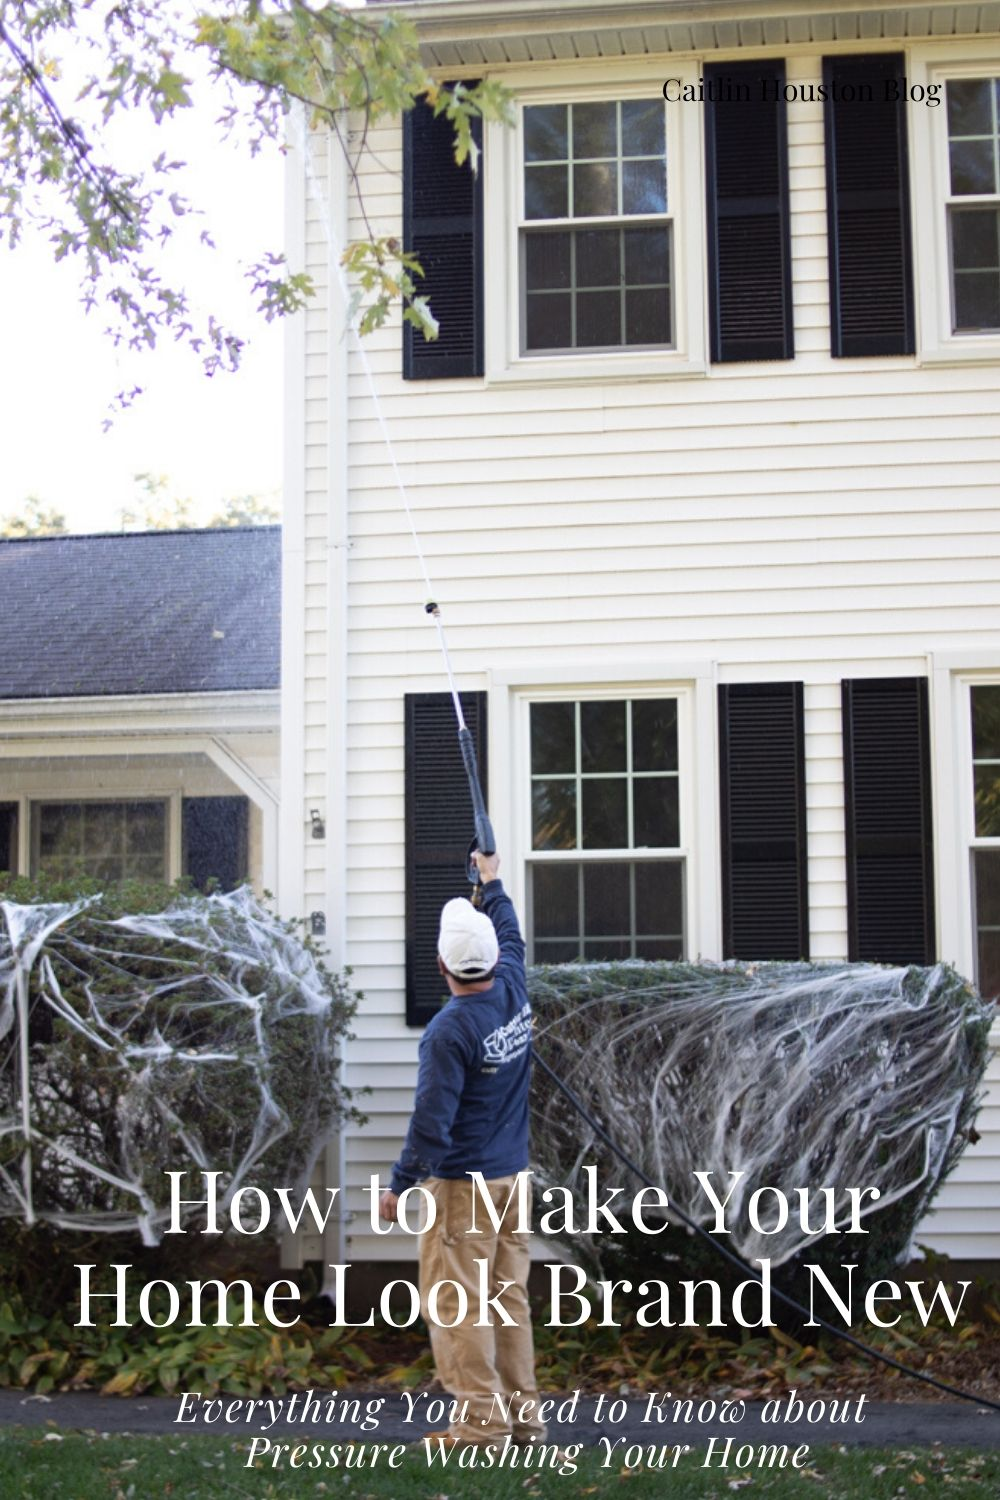 How to Make Your Home Look Brand New with Pressure Washing - Cutting Edge Painters and Caitlin Houston Blog